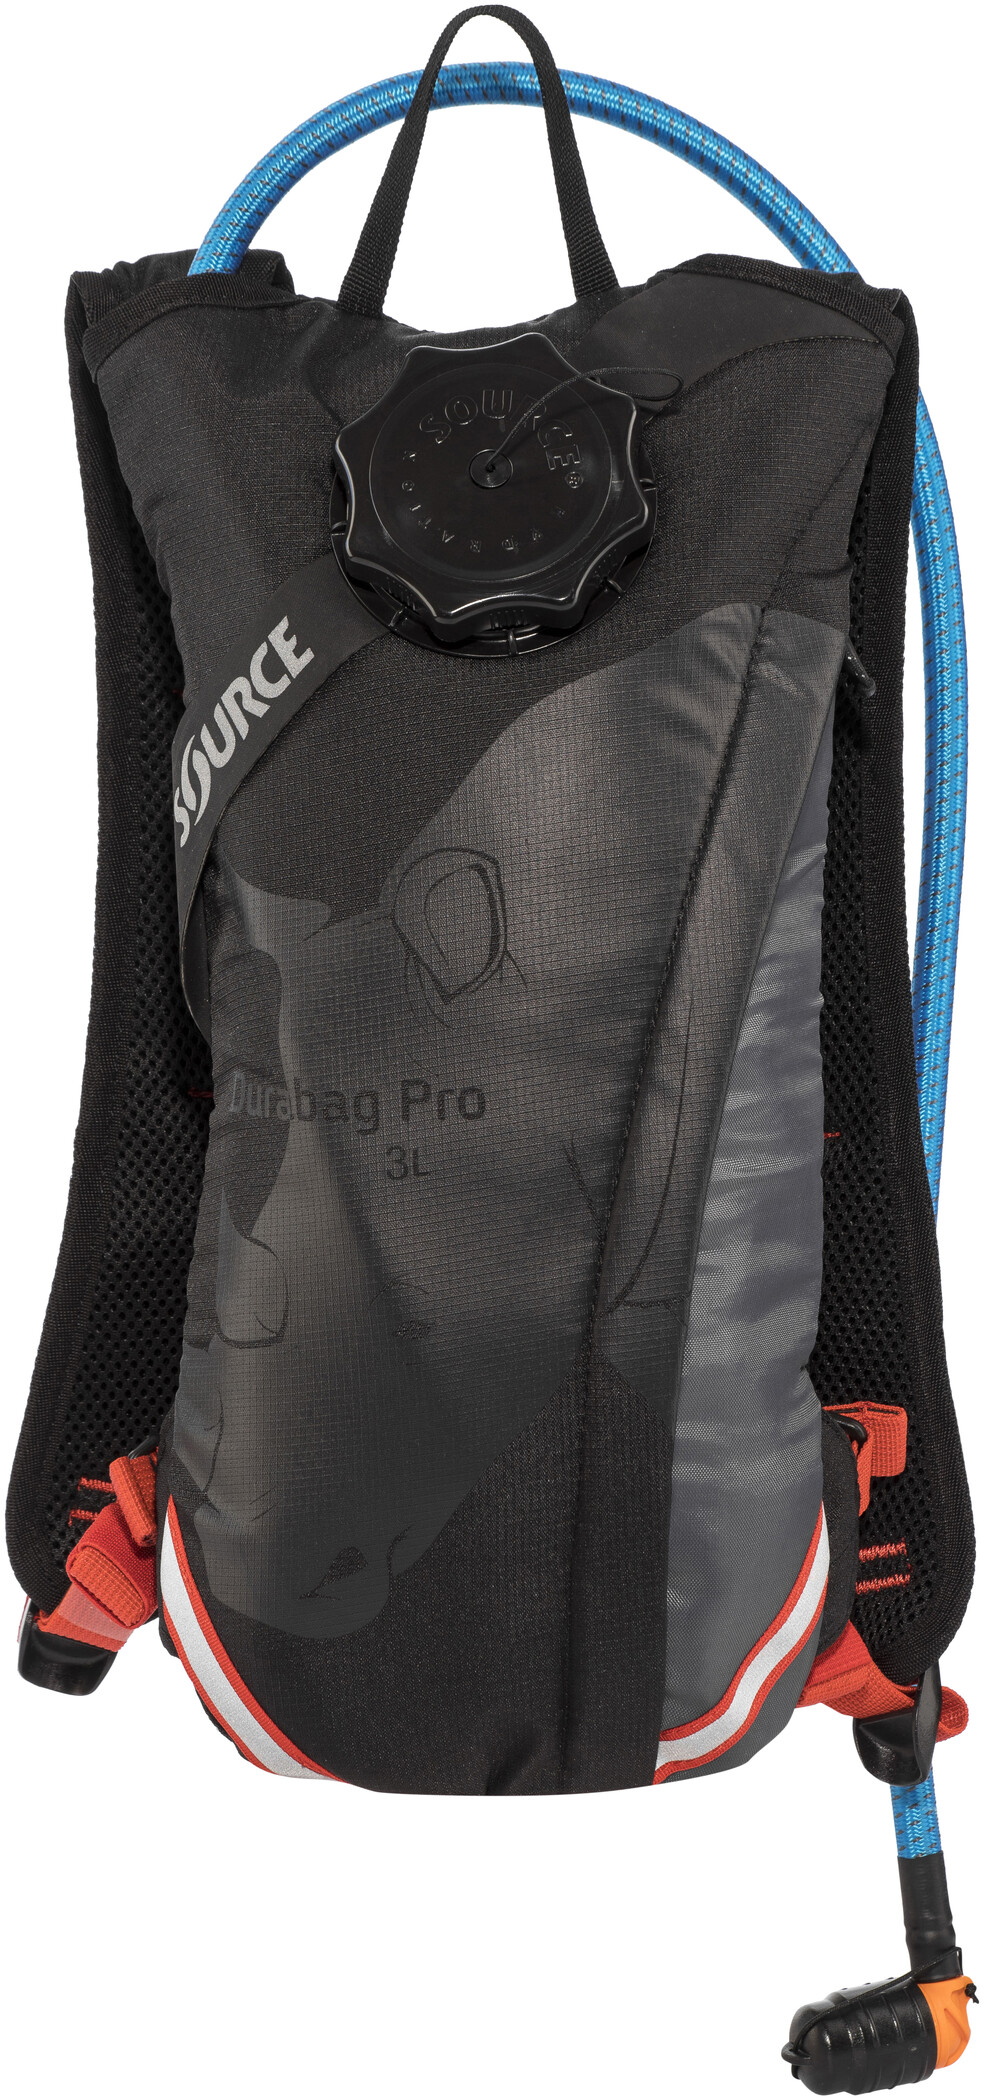 SOURCE Durabag Pro Hydration Pack medium, gray/ black/ fiesta (2019) | item_misc